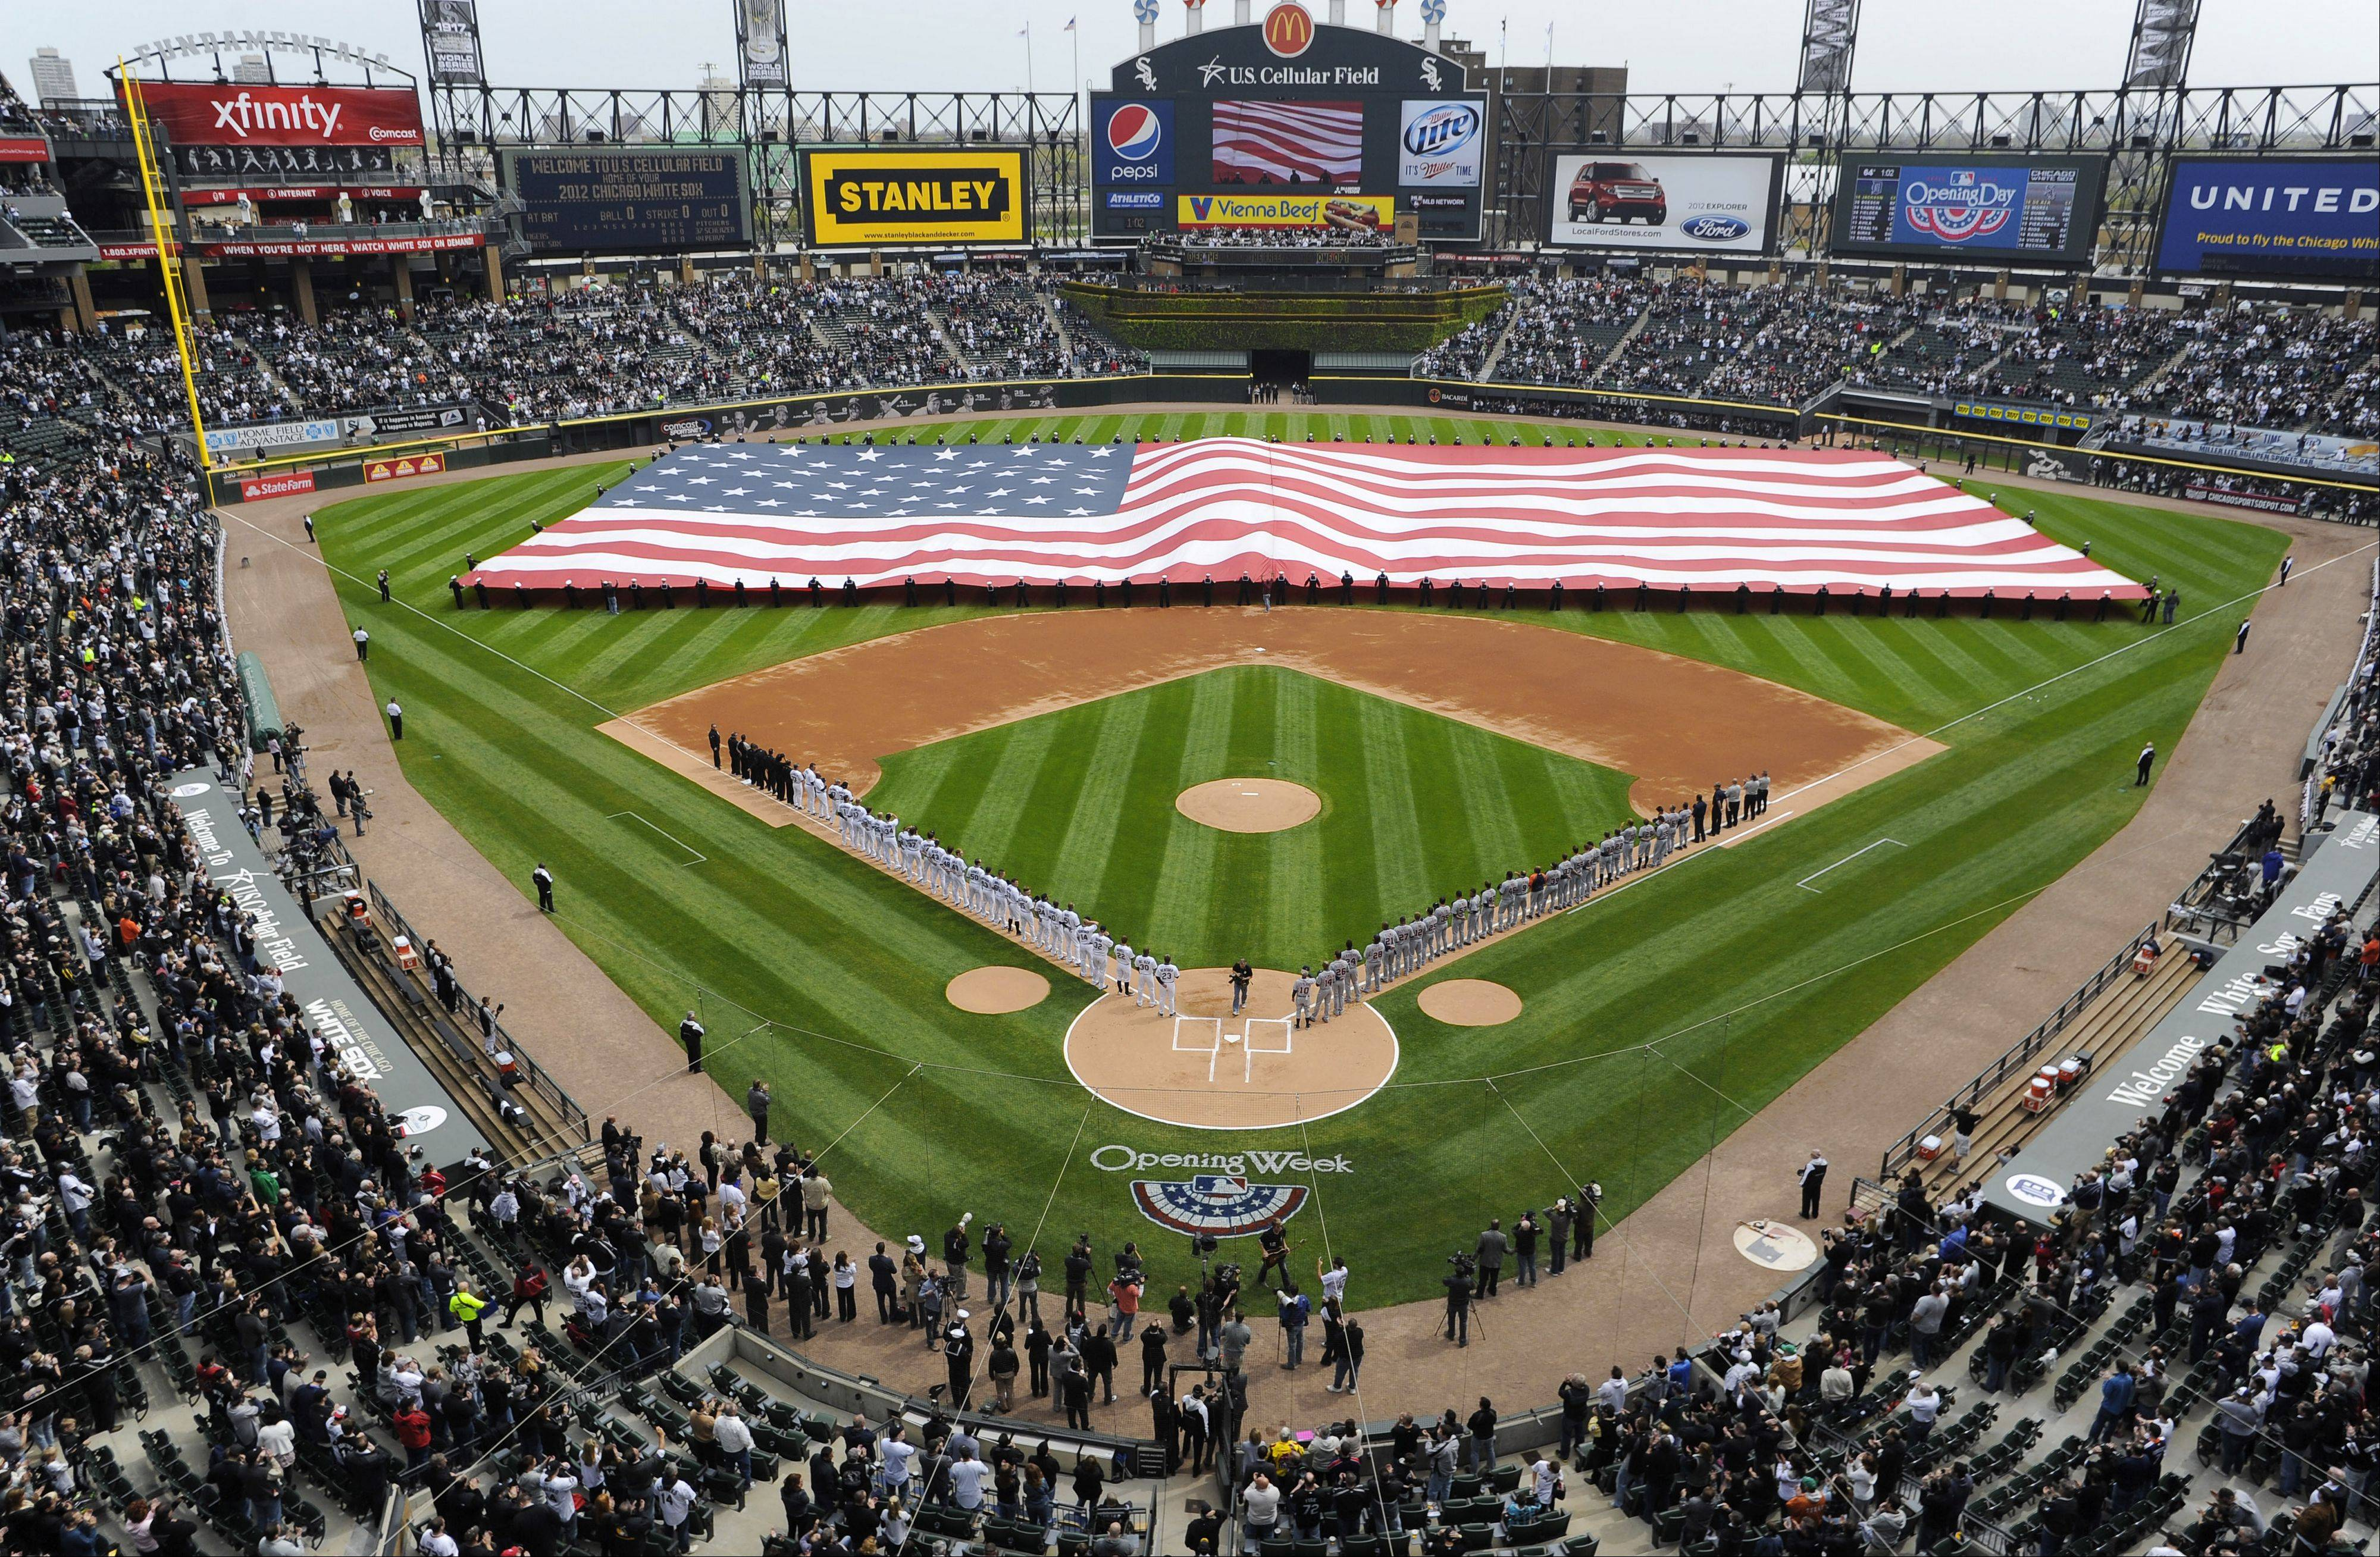 The White Sox will open the 2013 regular season against the Kansas City Royals at U.S. Cellular Field.